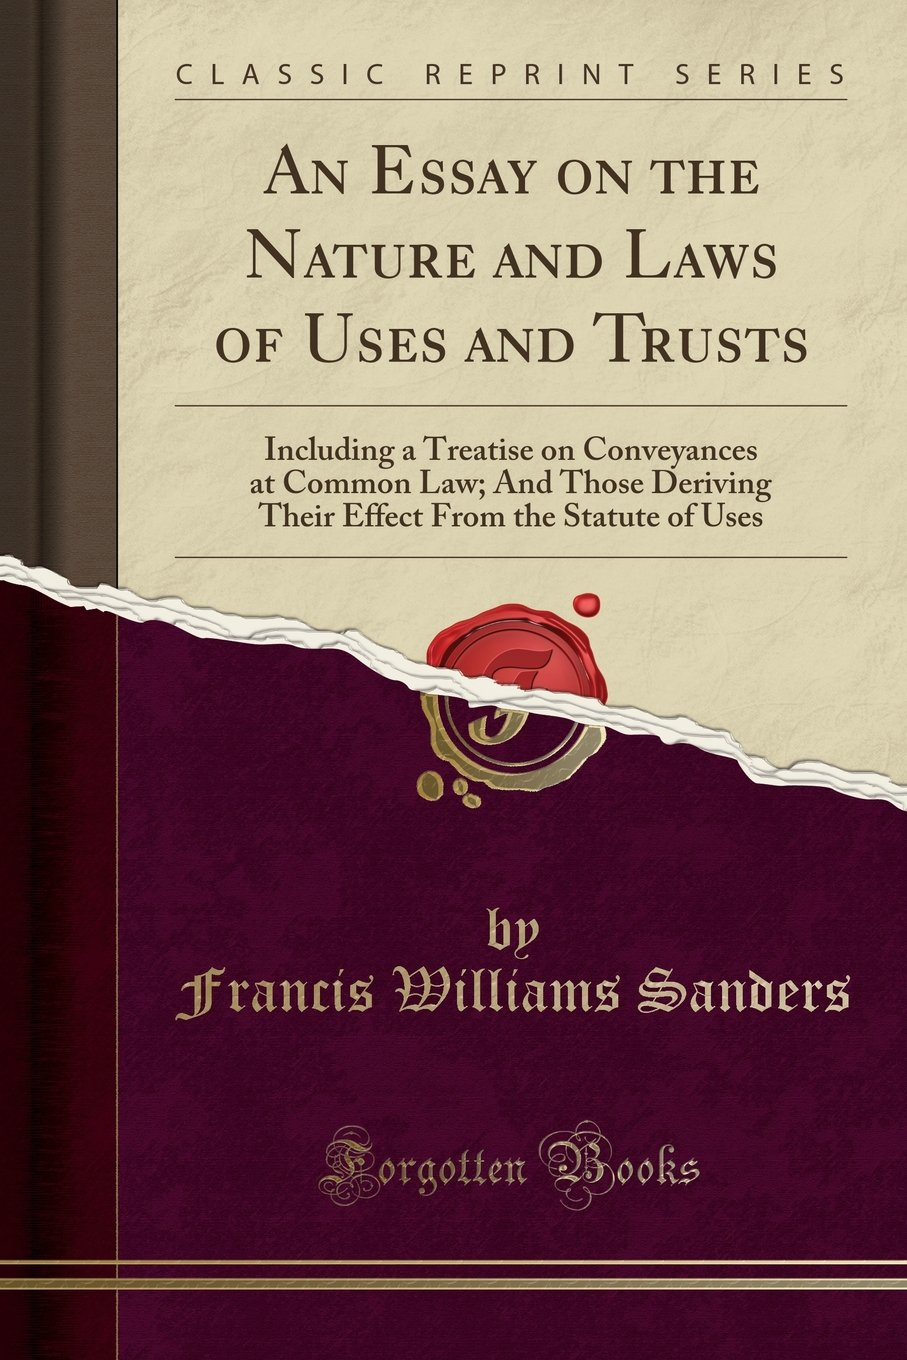 An Essay on the Nature and Laws of Uses and Trusts: Including a Treatise on Conveyances at Common Law; And Those Deriving Their Effect From the Statute of Uses (Classic Reprint) ebook